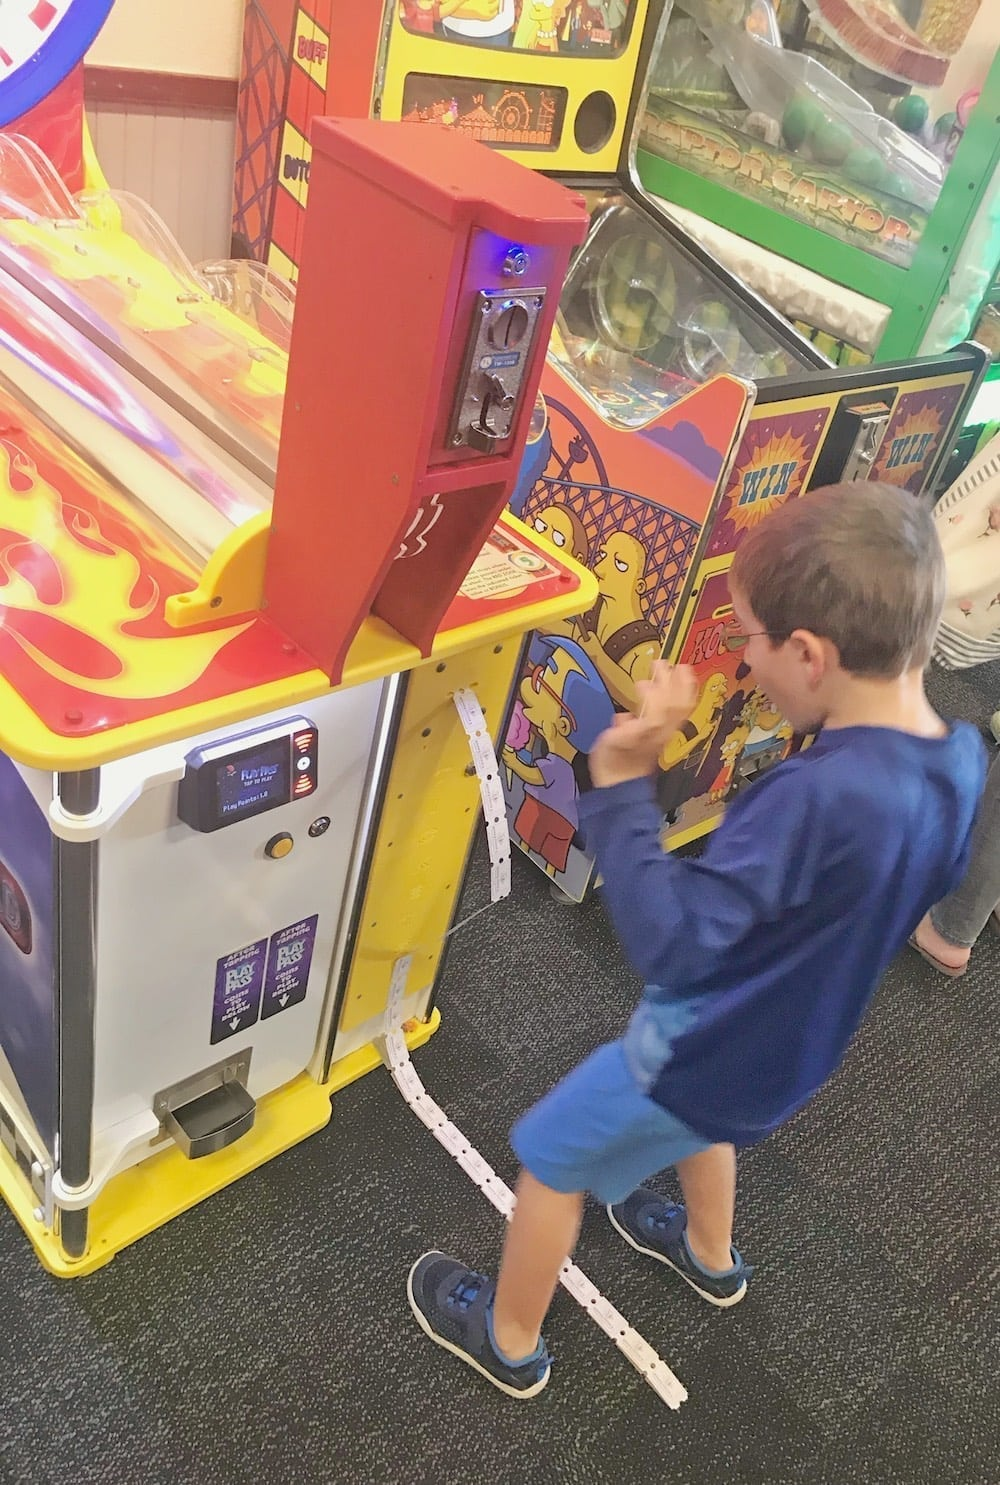 Chuck E Cheese's game printing out tickets